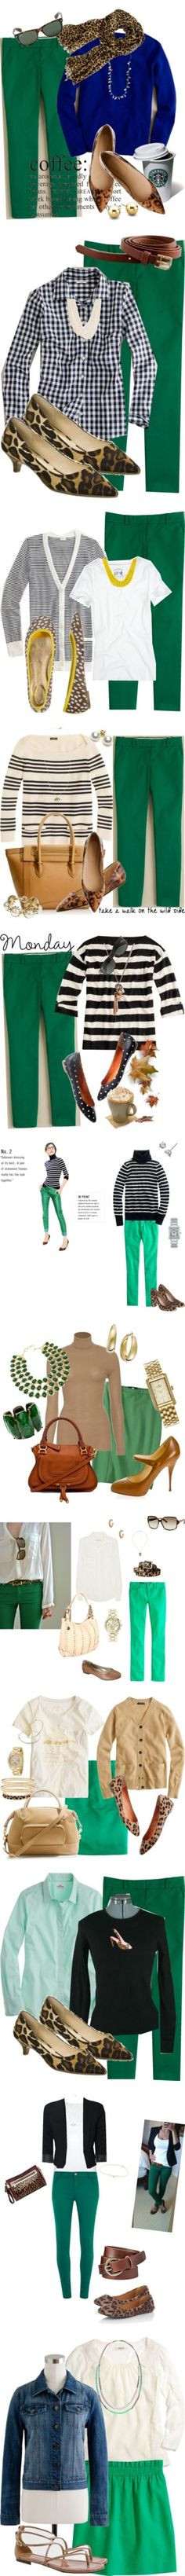 """""""Green Capris"""" by robbiesjd on Polyvore"""